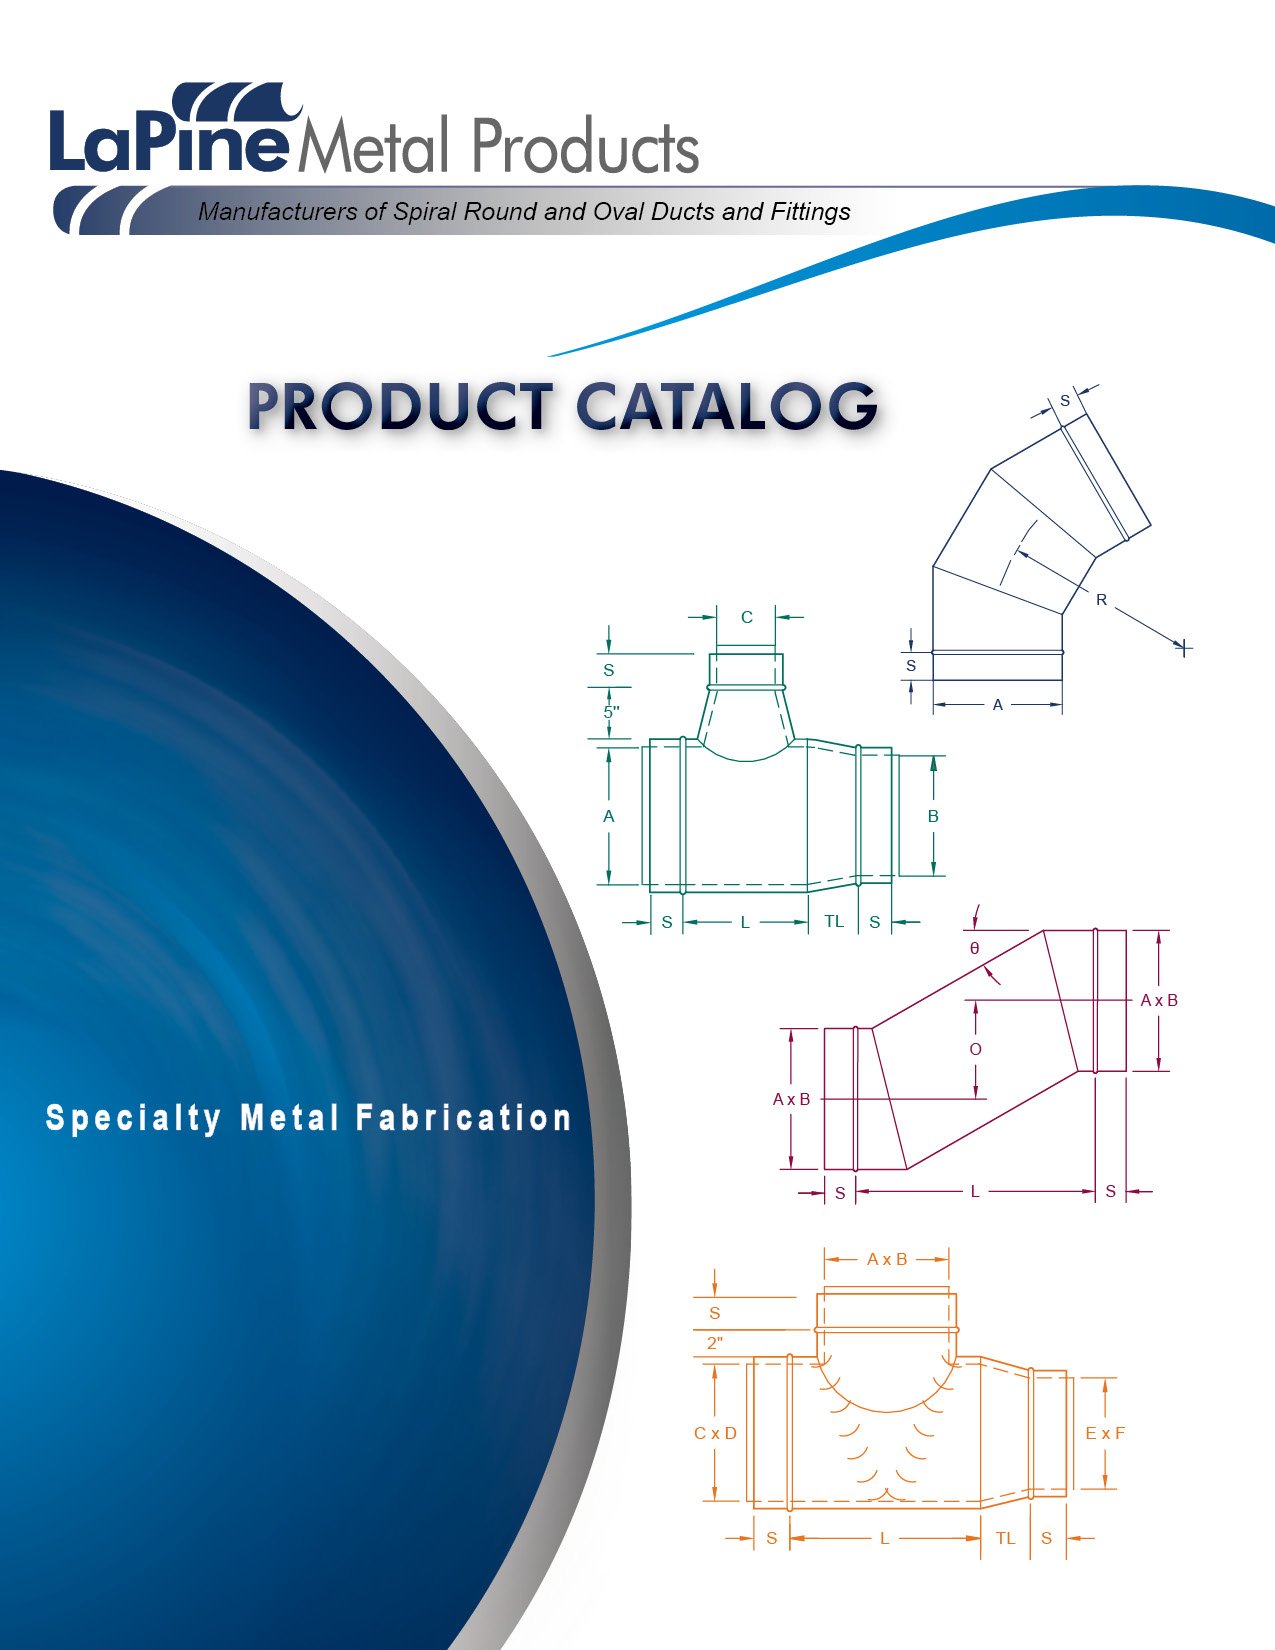 LaPine Metal Products Catalog Design